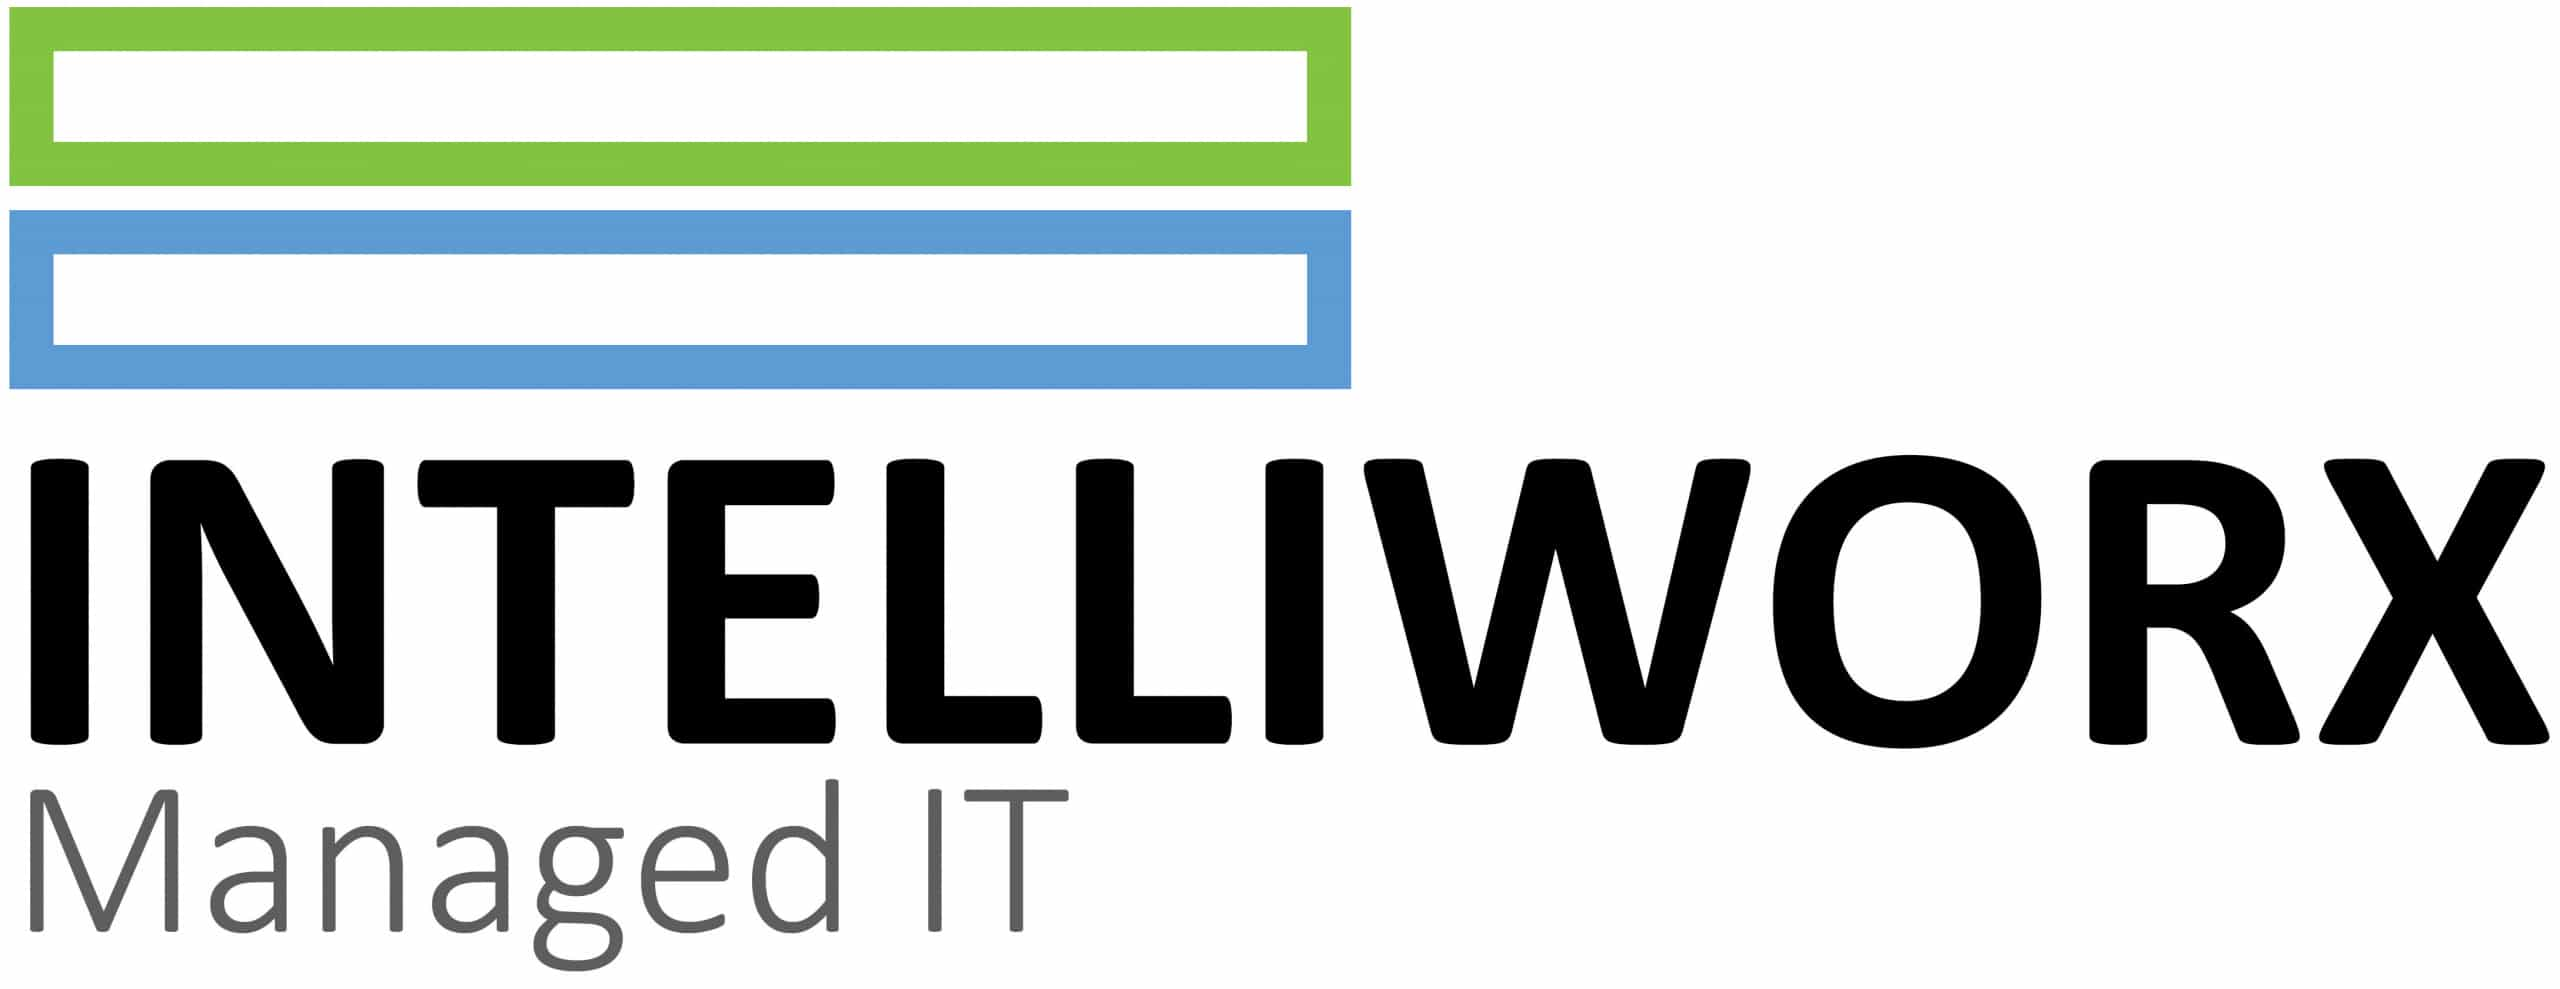 intelliworx-managed-it-web